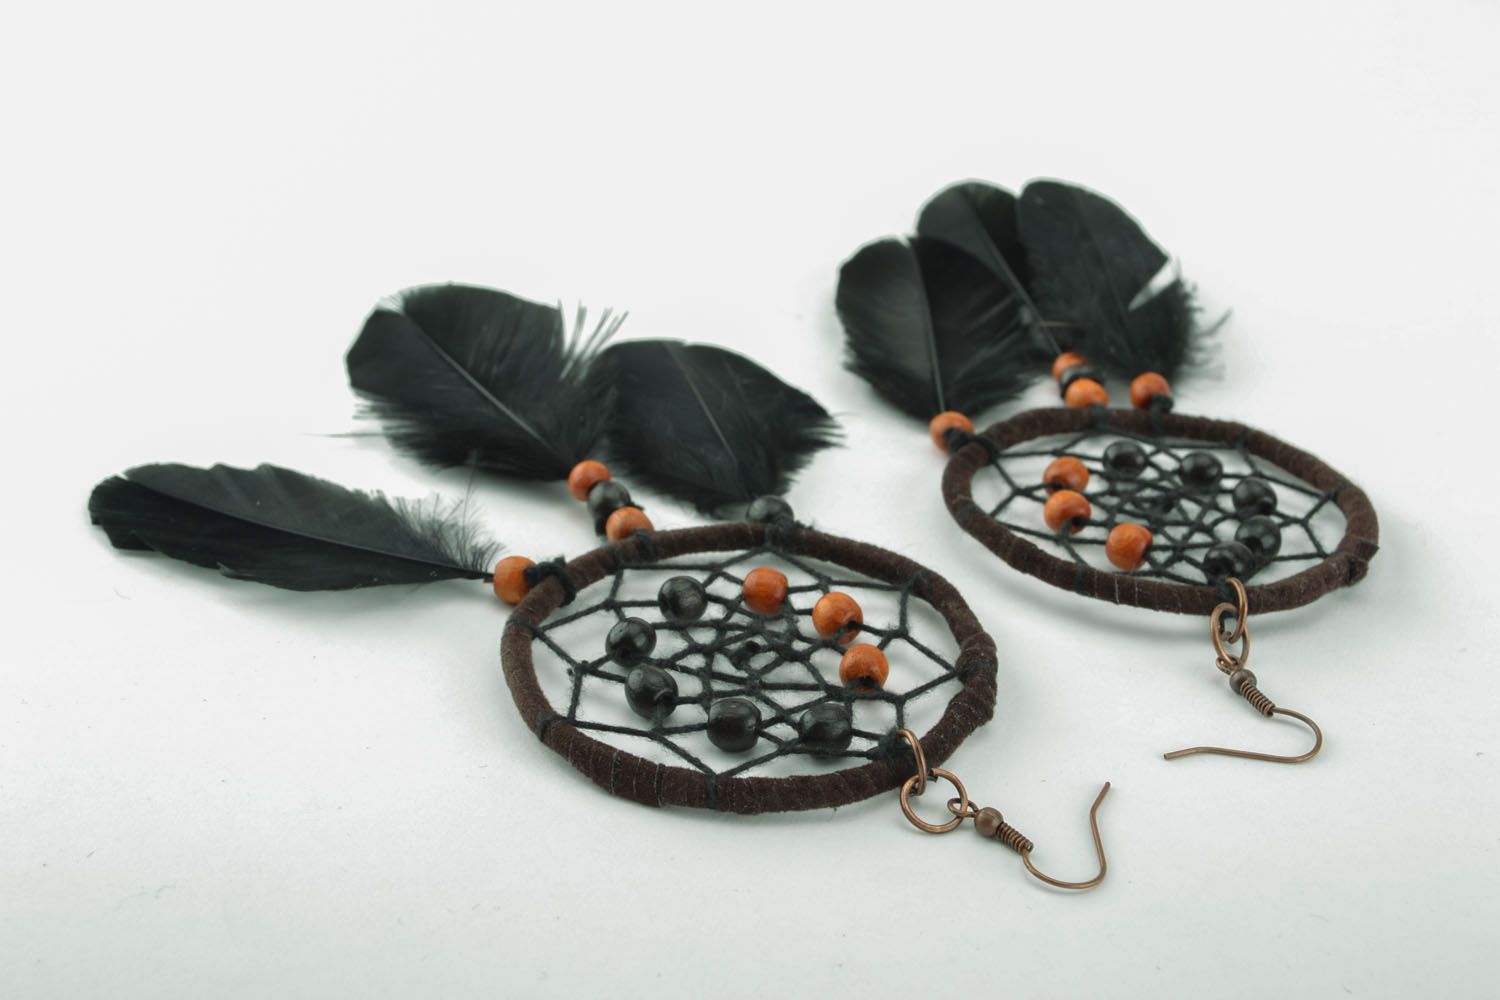 Homemade earrings in the shape of Dreamcatchers photo 4